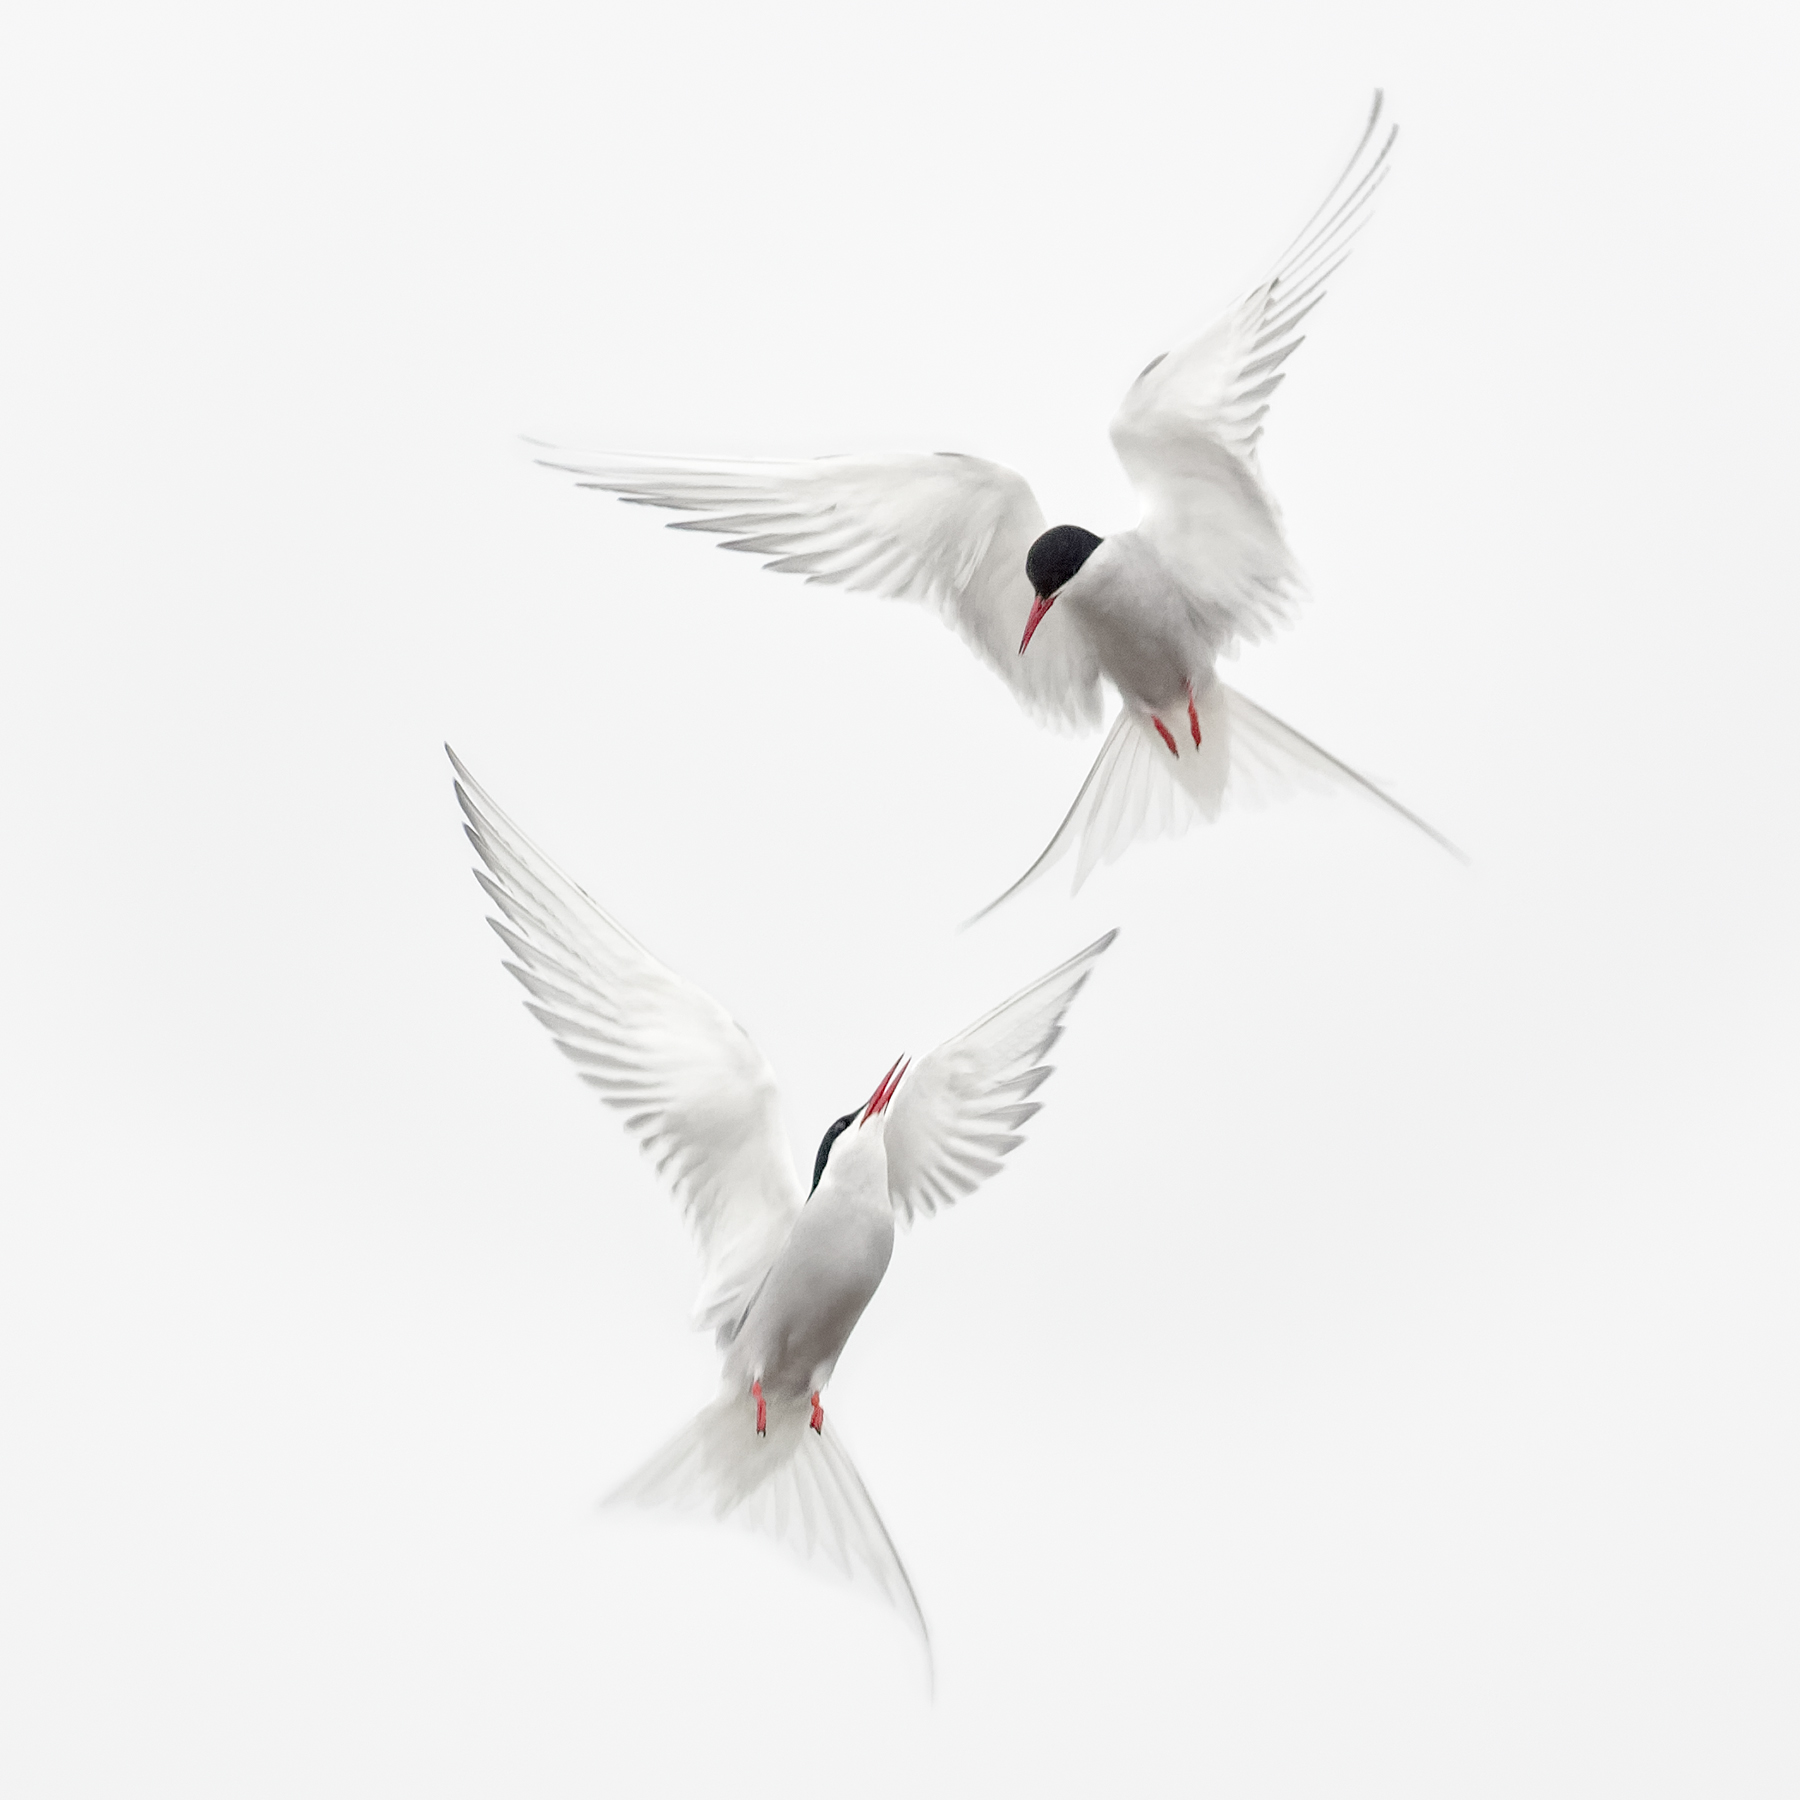 Brian_Jones_Arctic Terns Courtship Flight_Arctic Terns Courtship Flight 3_3.jpg